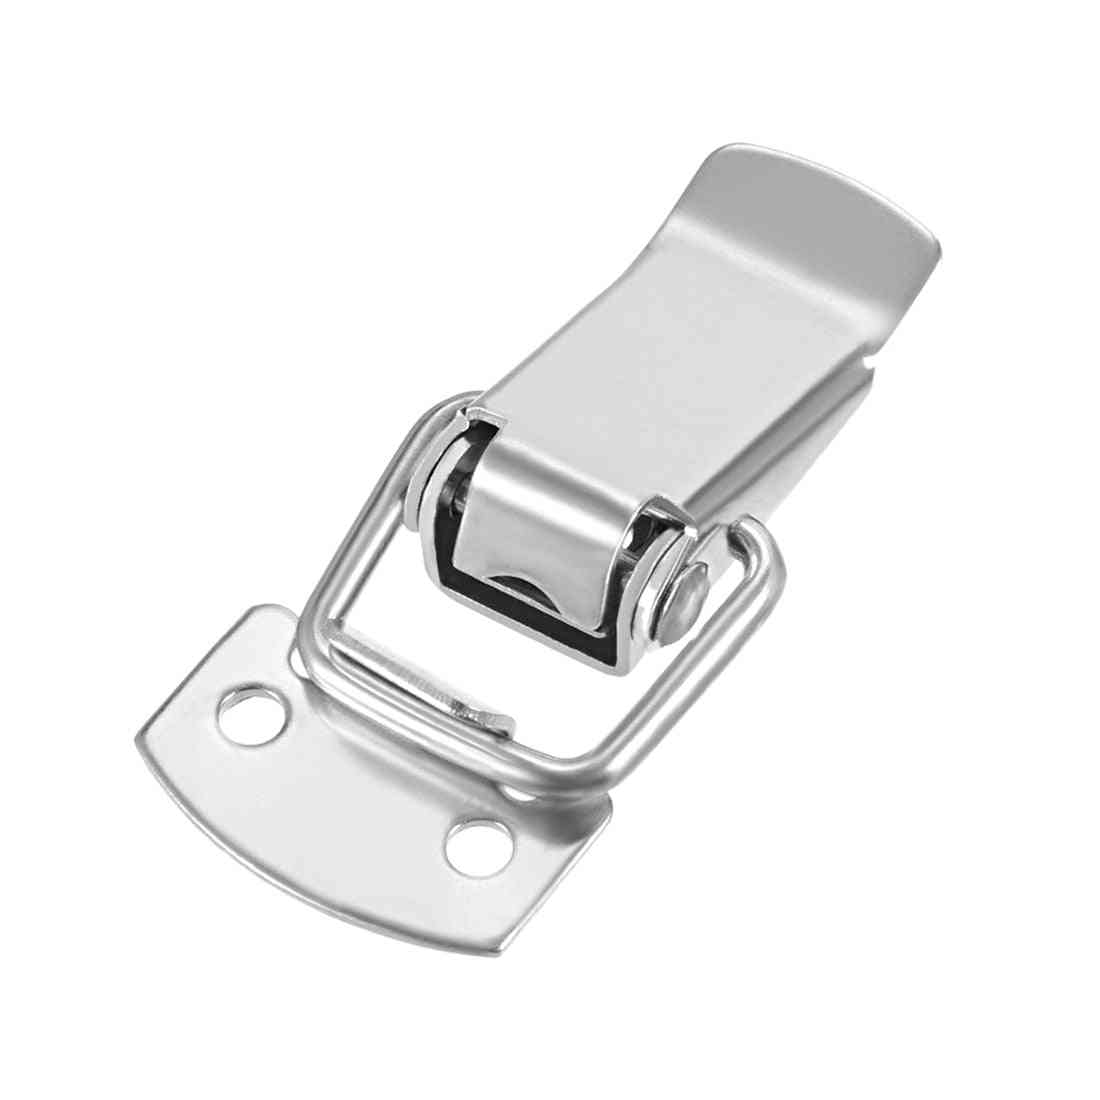 Stainless Steel Latch Catches Clamp